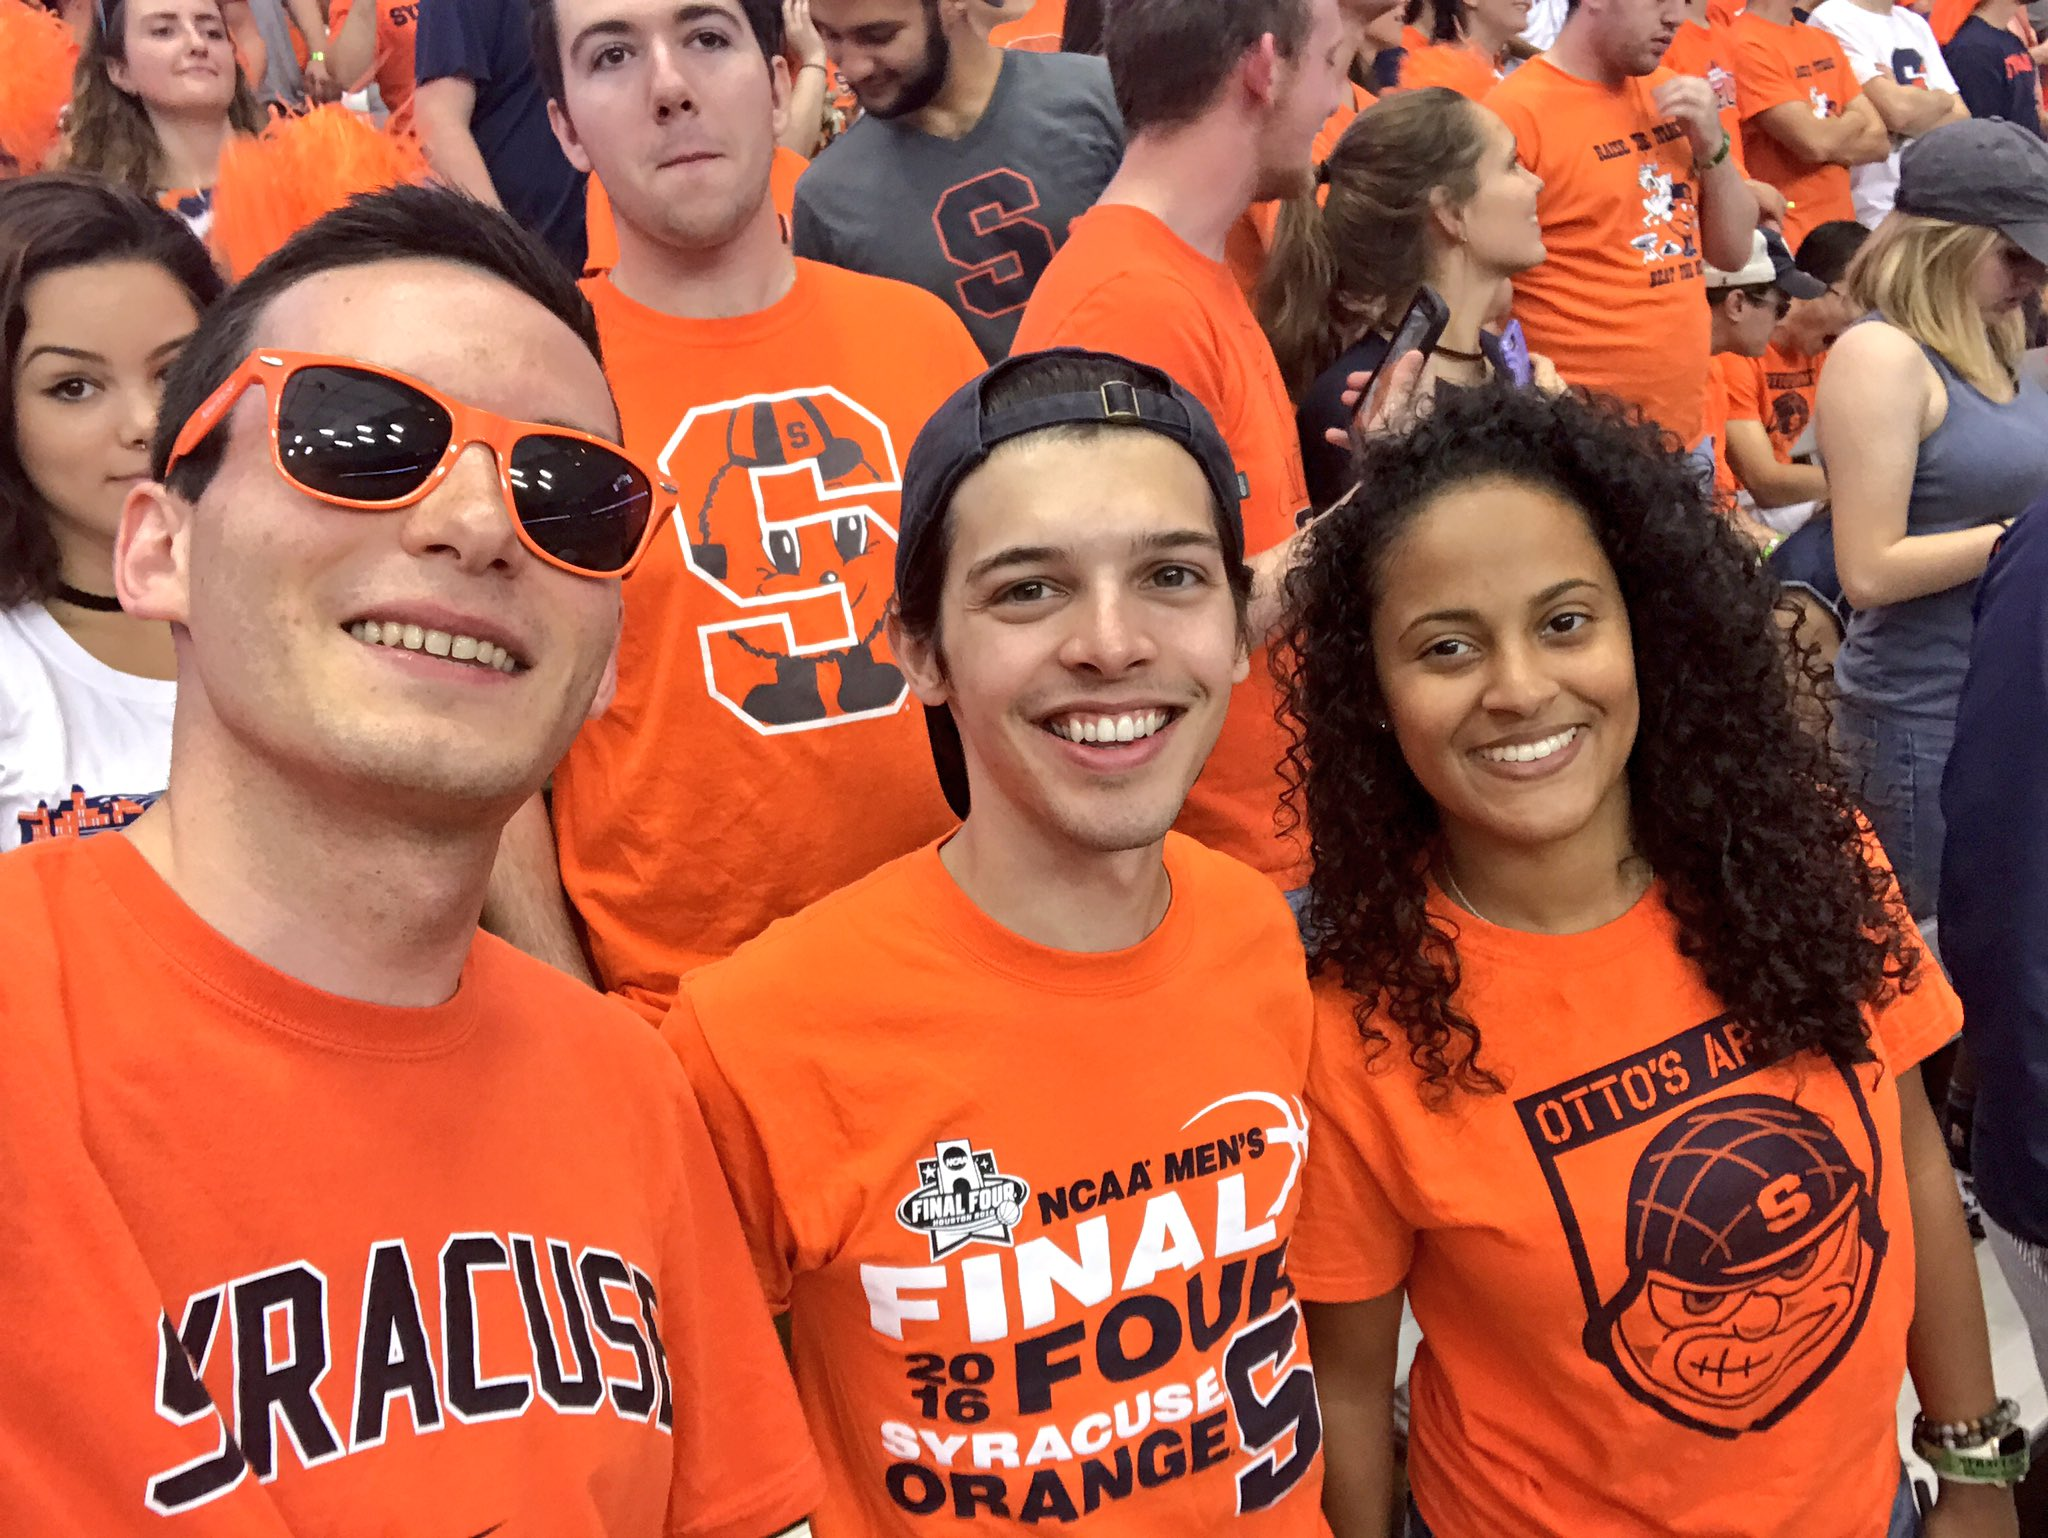 With my favorite people in my favorite place and CUSE is up by 14. Life is good. #OrangeCentral #USFvsCUSE https://t.co/AzNq49tRm3